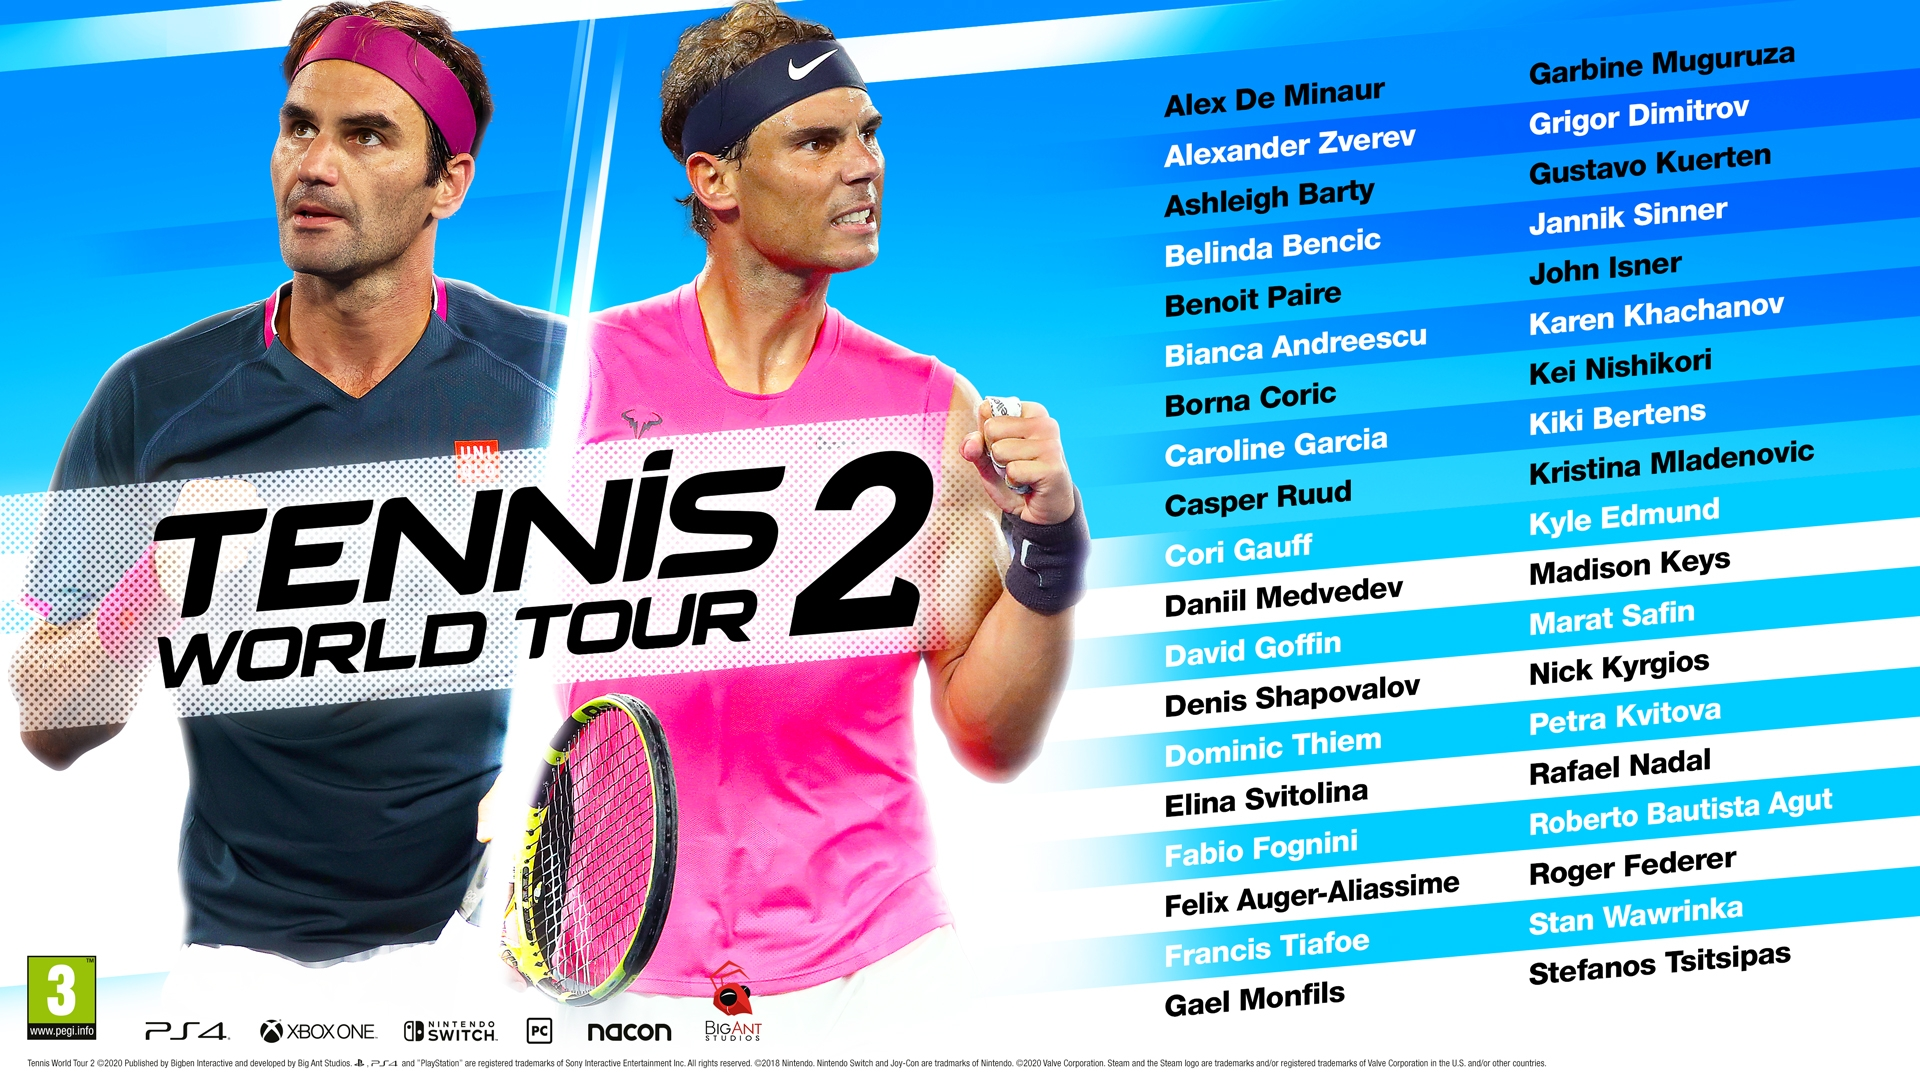 TENNIS WORLD TOUR 2: La lista completa dei tennisti